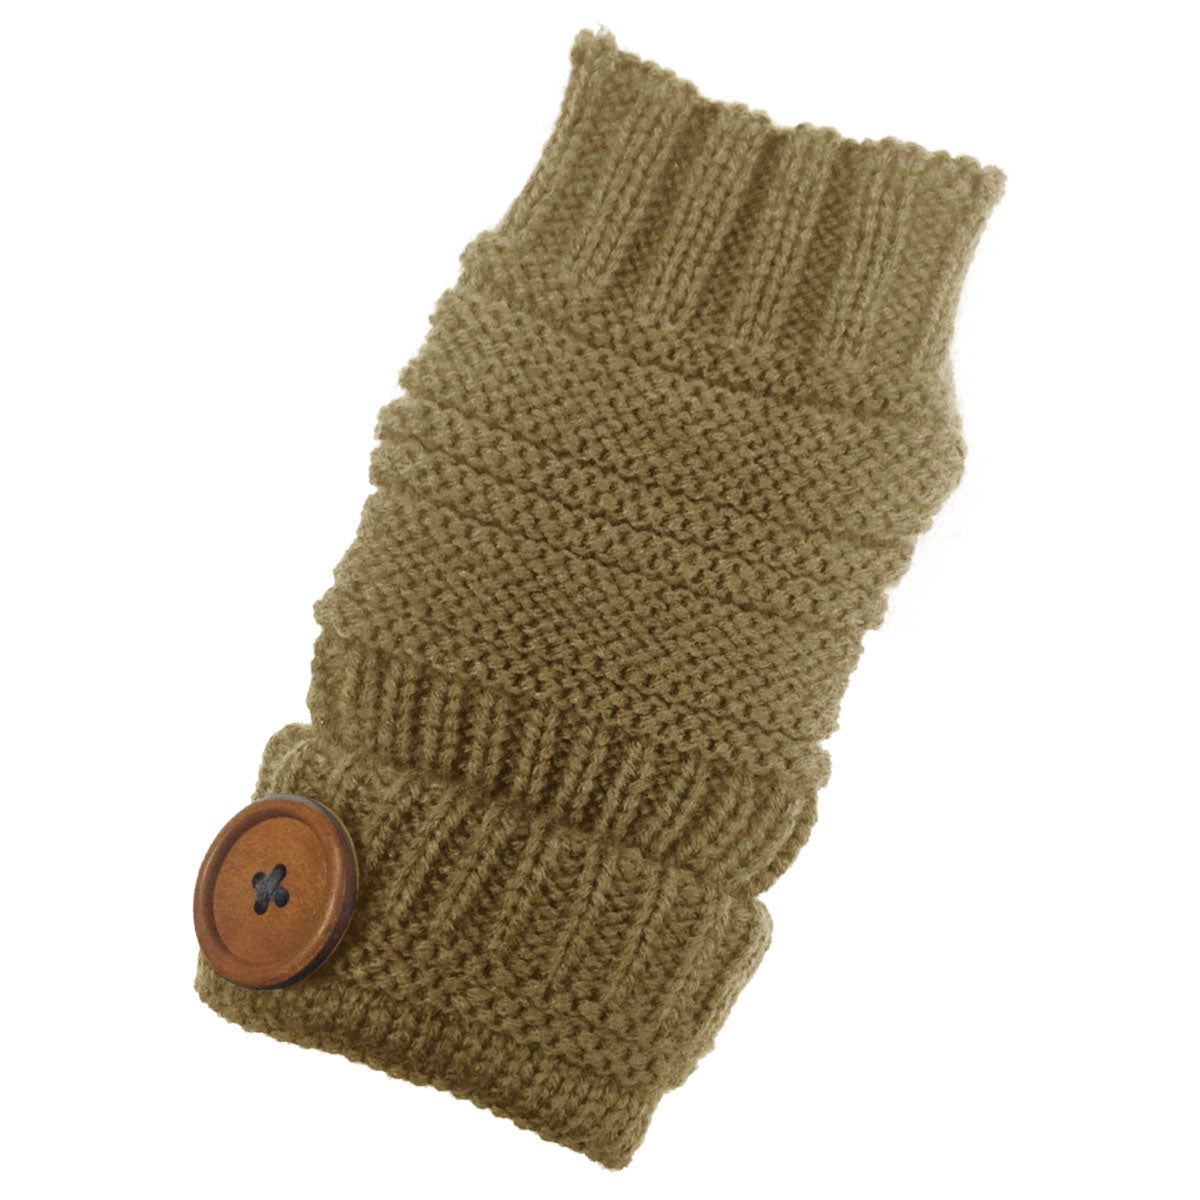 Wrapables Fingerless Gloves with Button Accent